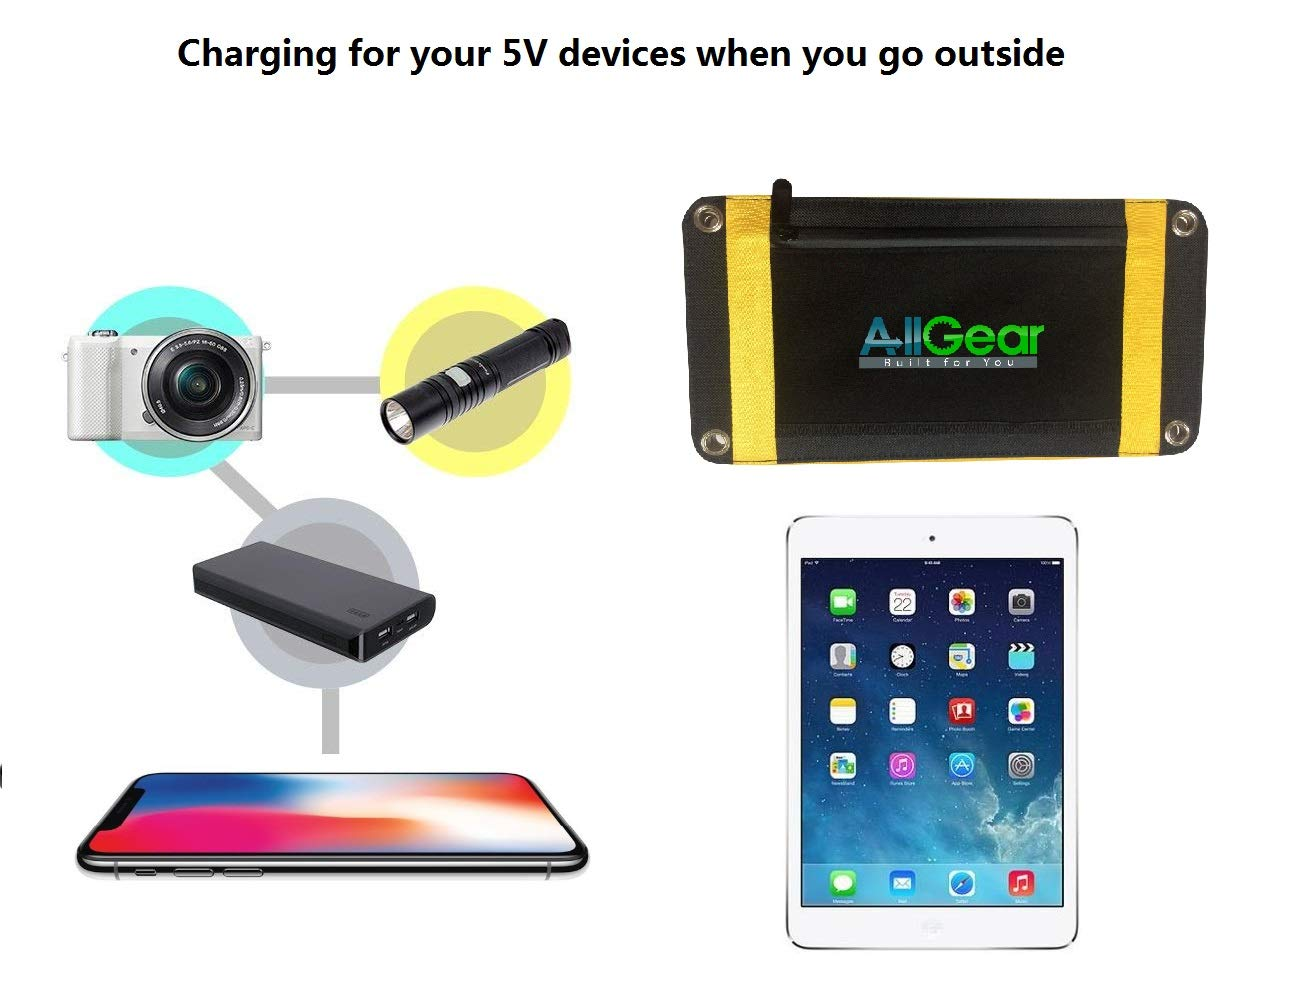 AllGear Solar Charger 21W Solar Folding Panel with Dual USB Ports for Cell Phone iPad and More Electronic Devices